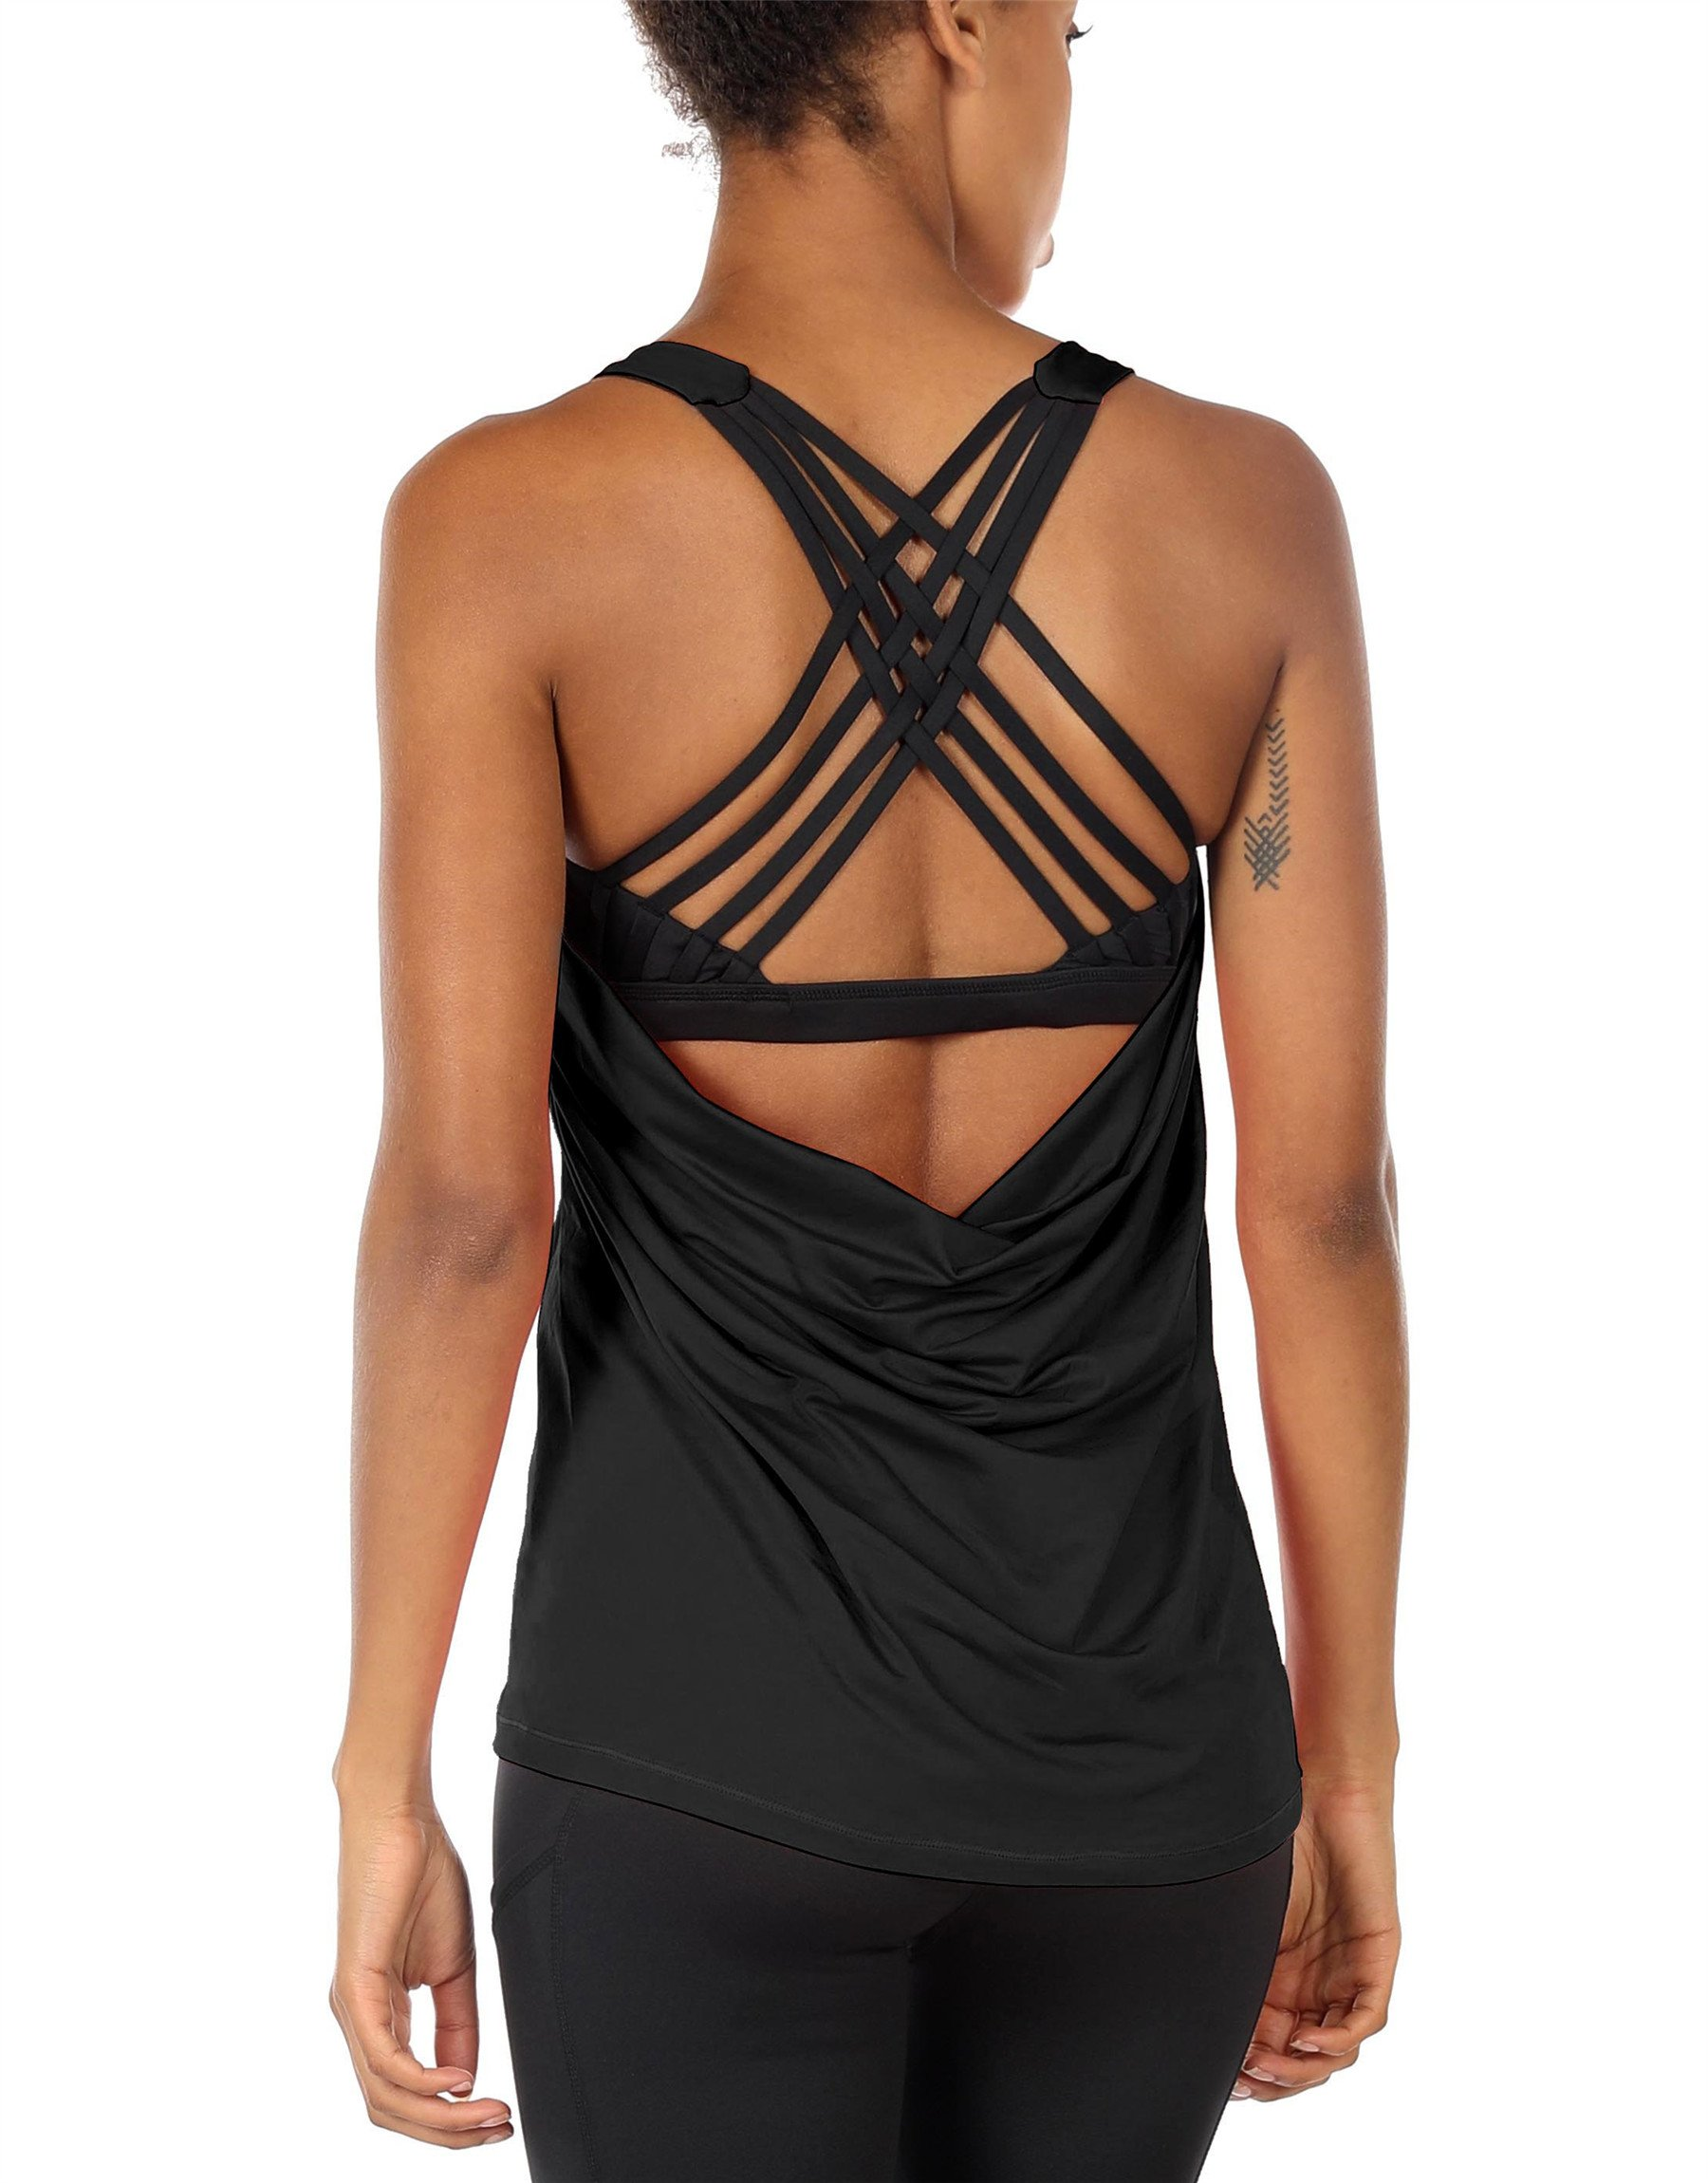 icyzone Yoga Tops Workouts Clothes Activewear Built in Bra Tank Tops for Women (M, Black)